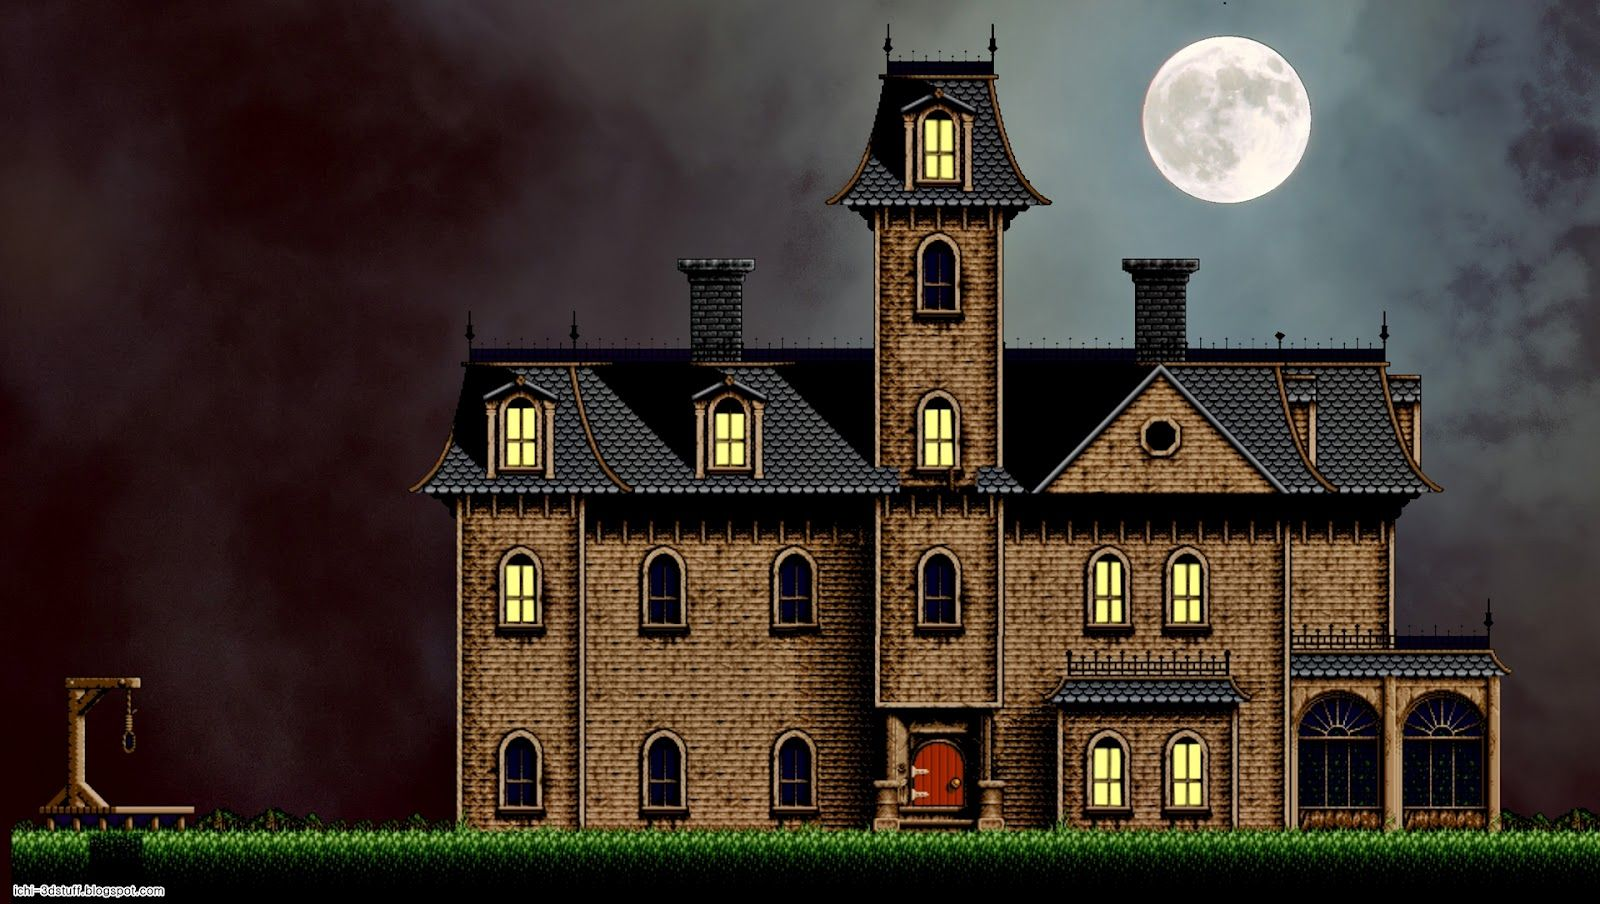 Addams Family Mansion From The Snes Game I Remember